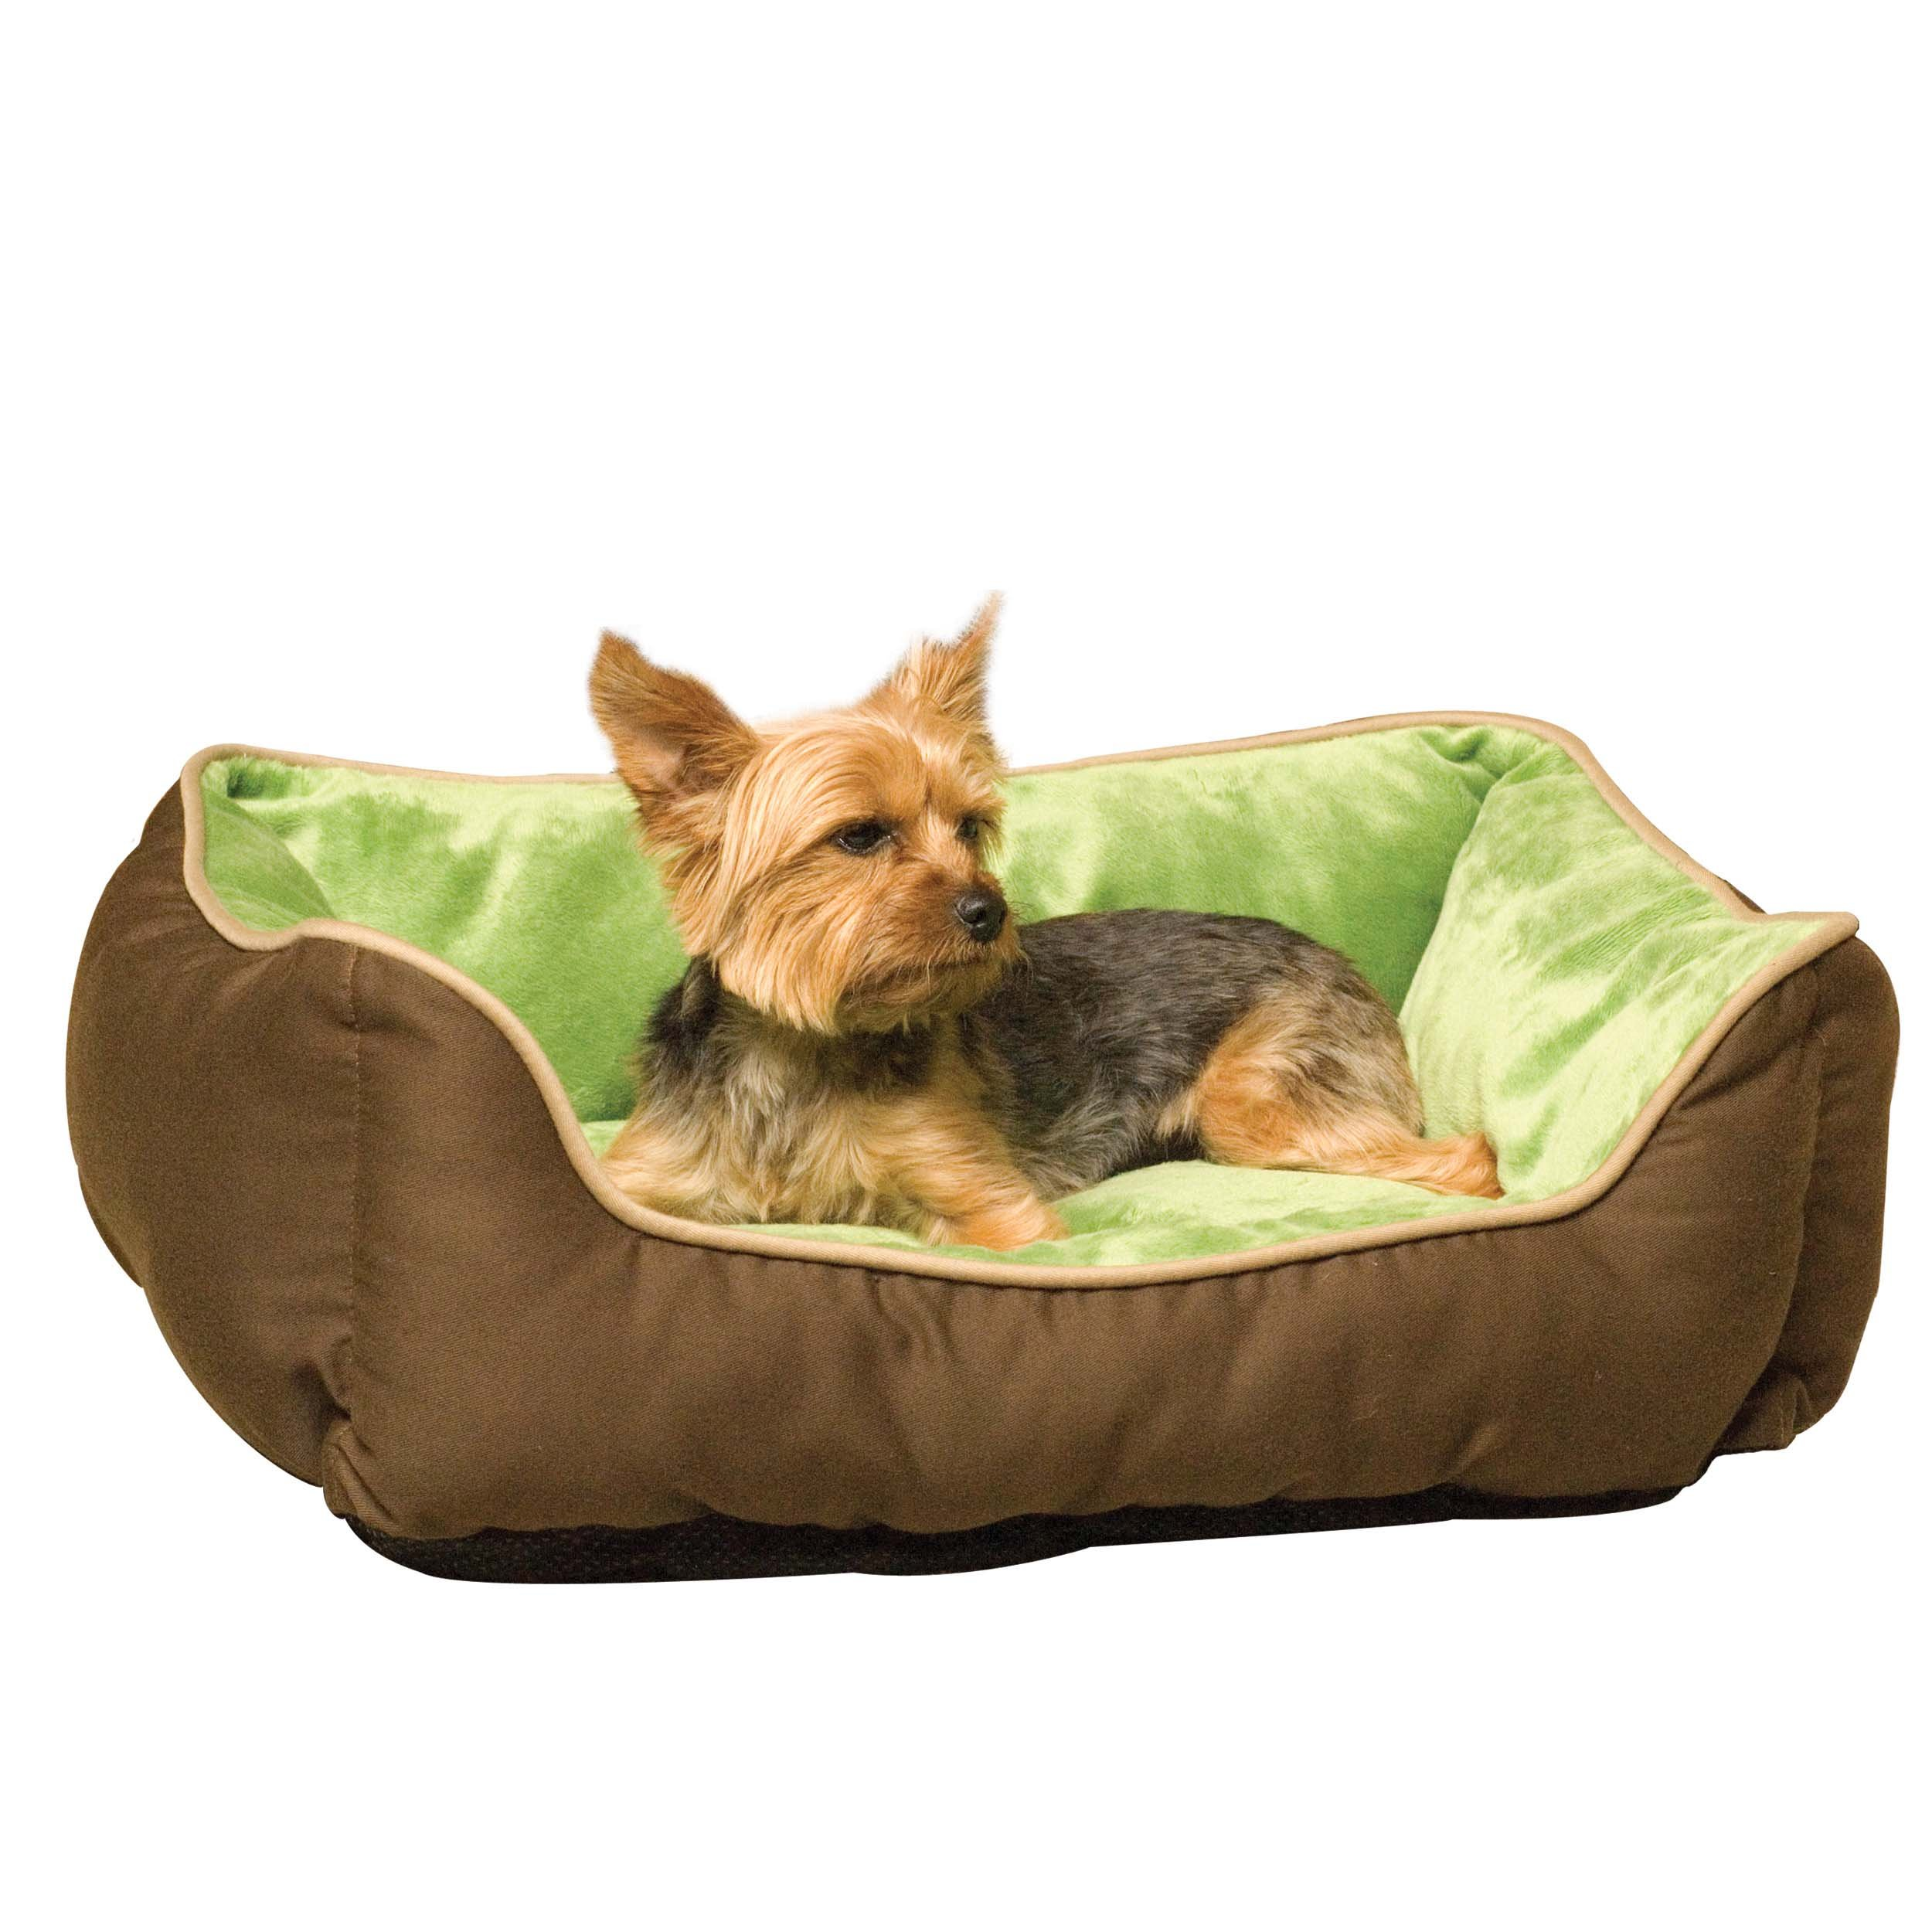 K&H Pet Products Self-Warming Lounge Sleeper Pet Bed Small Mocha/Green 16'' x 20''